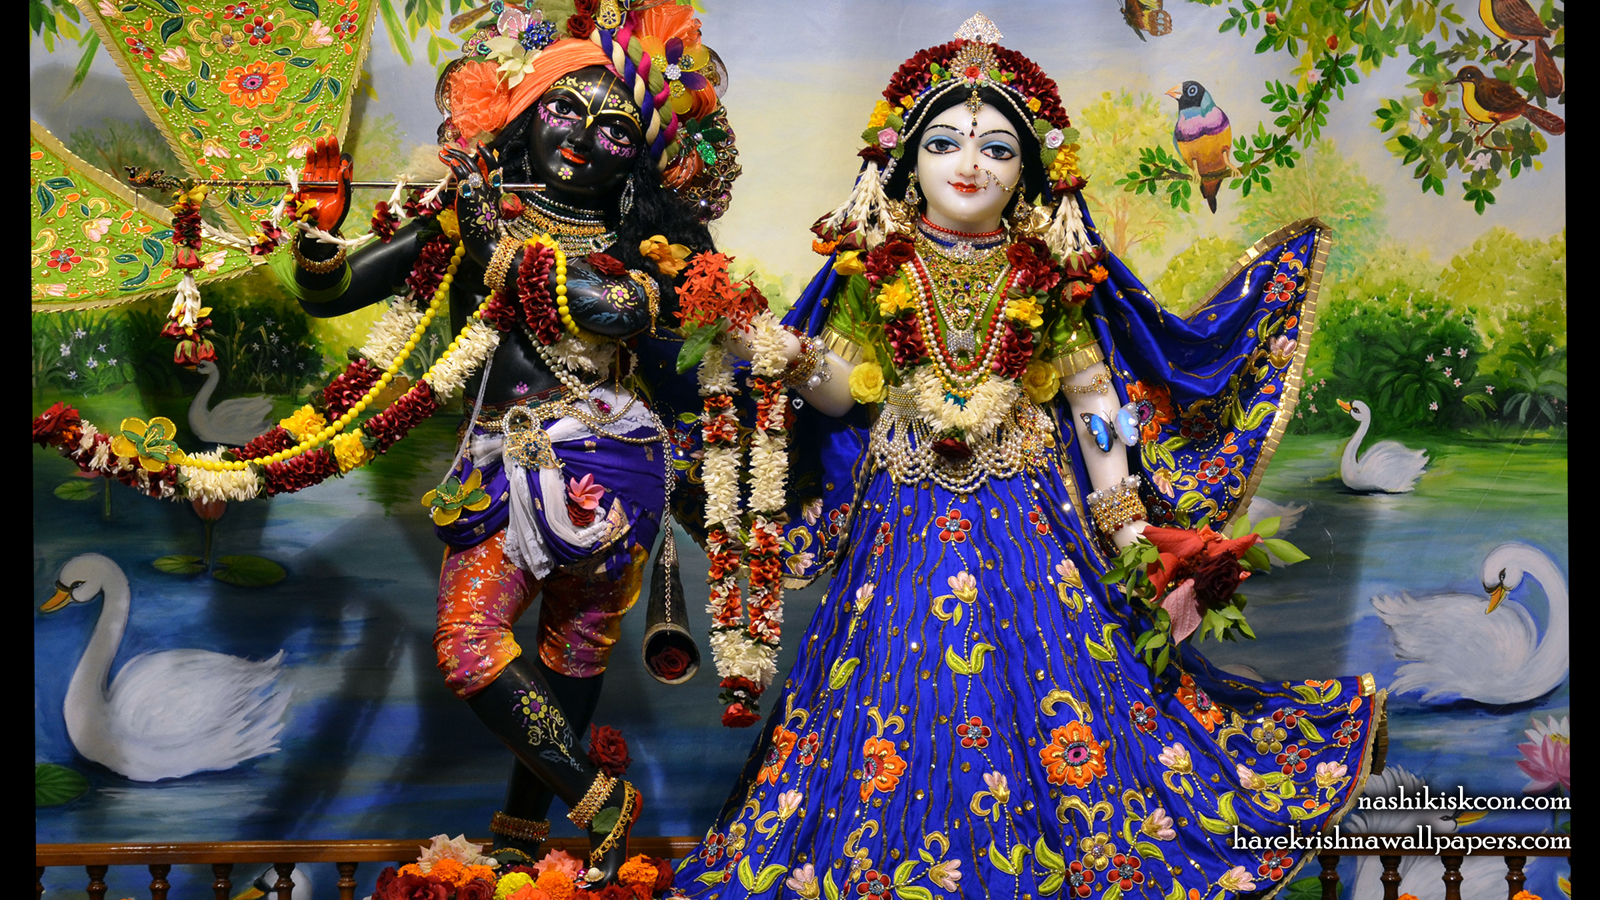 Sri Sri Radha Madan Gopal Wallpaper (010) Size 1600x900 Download